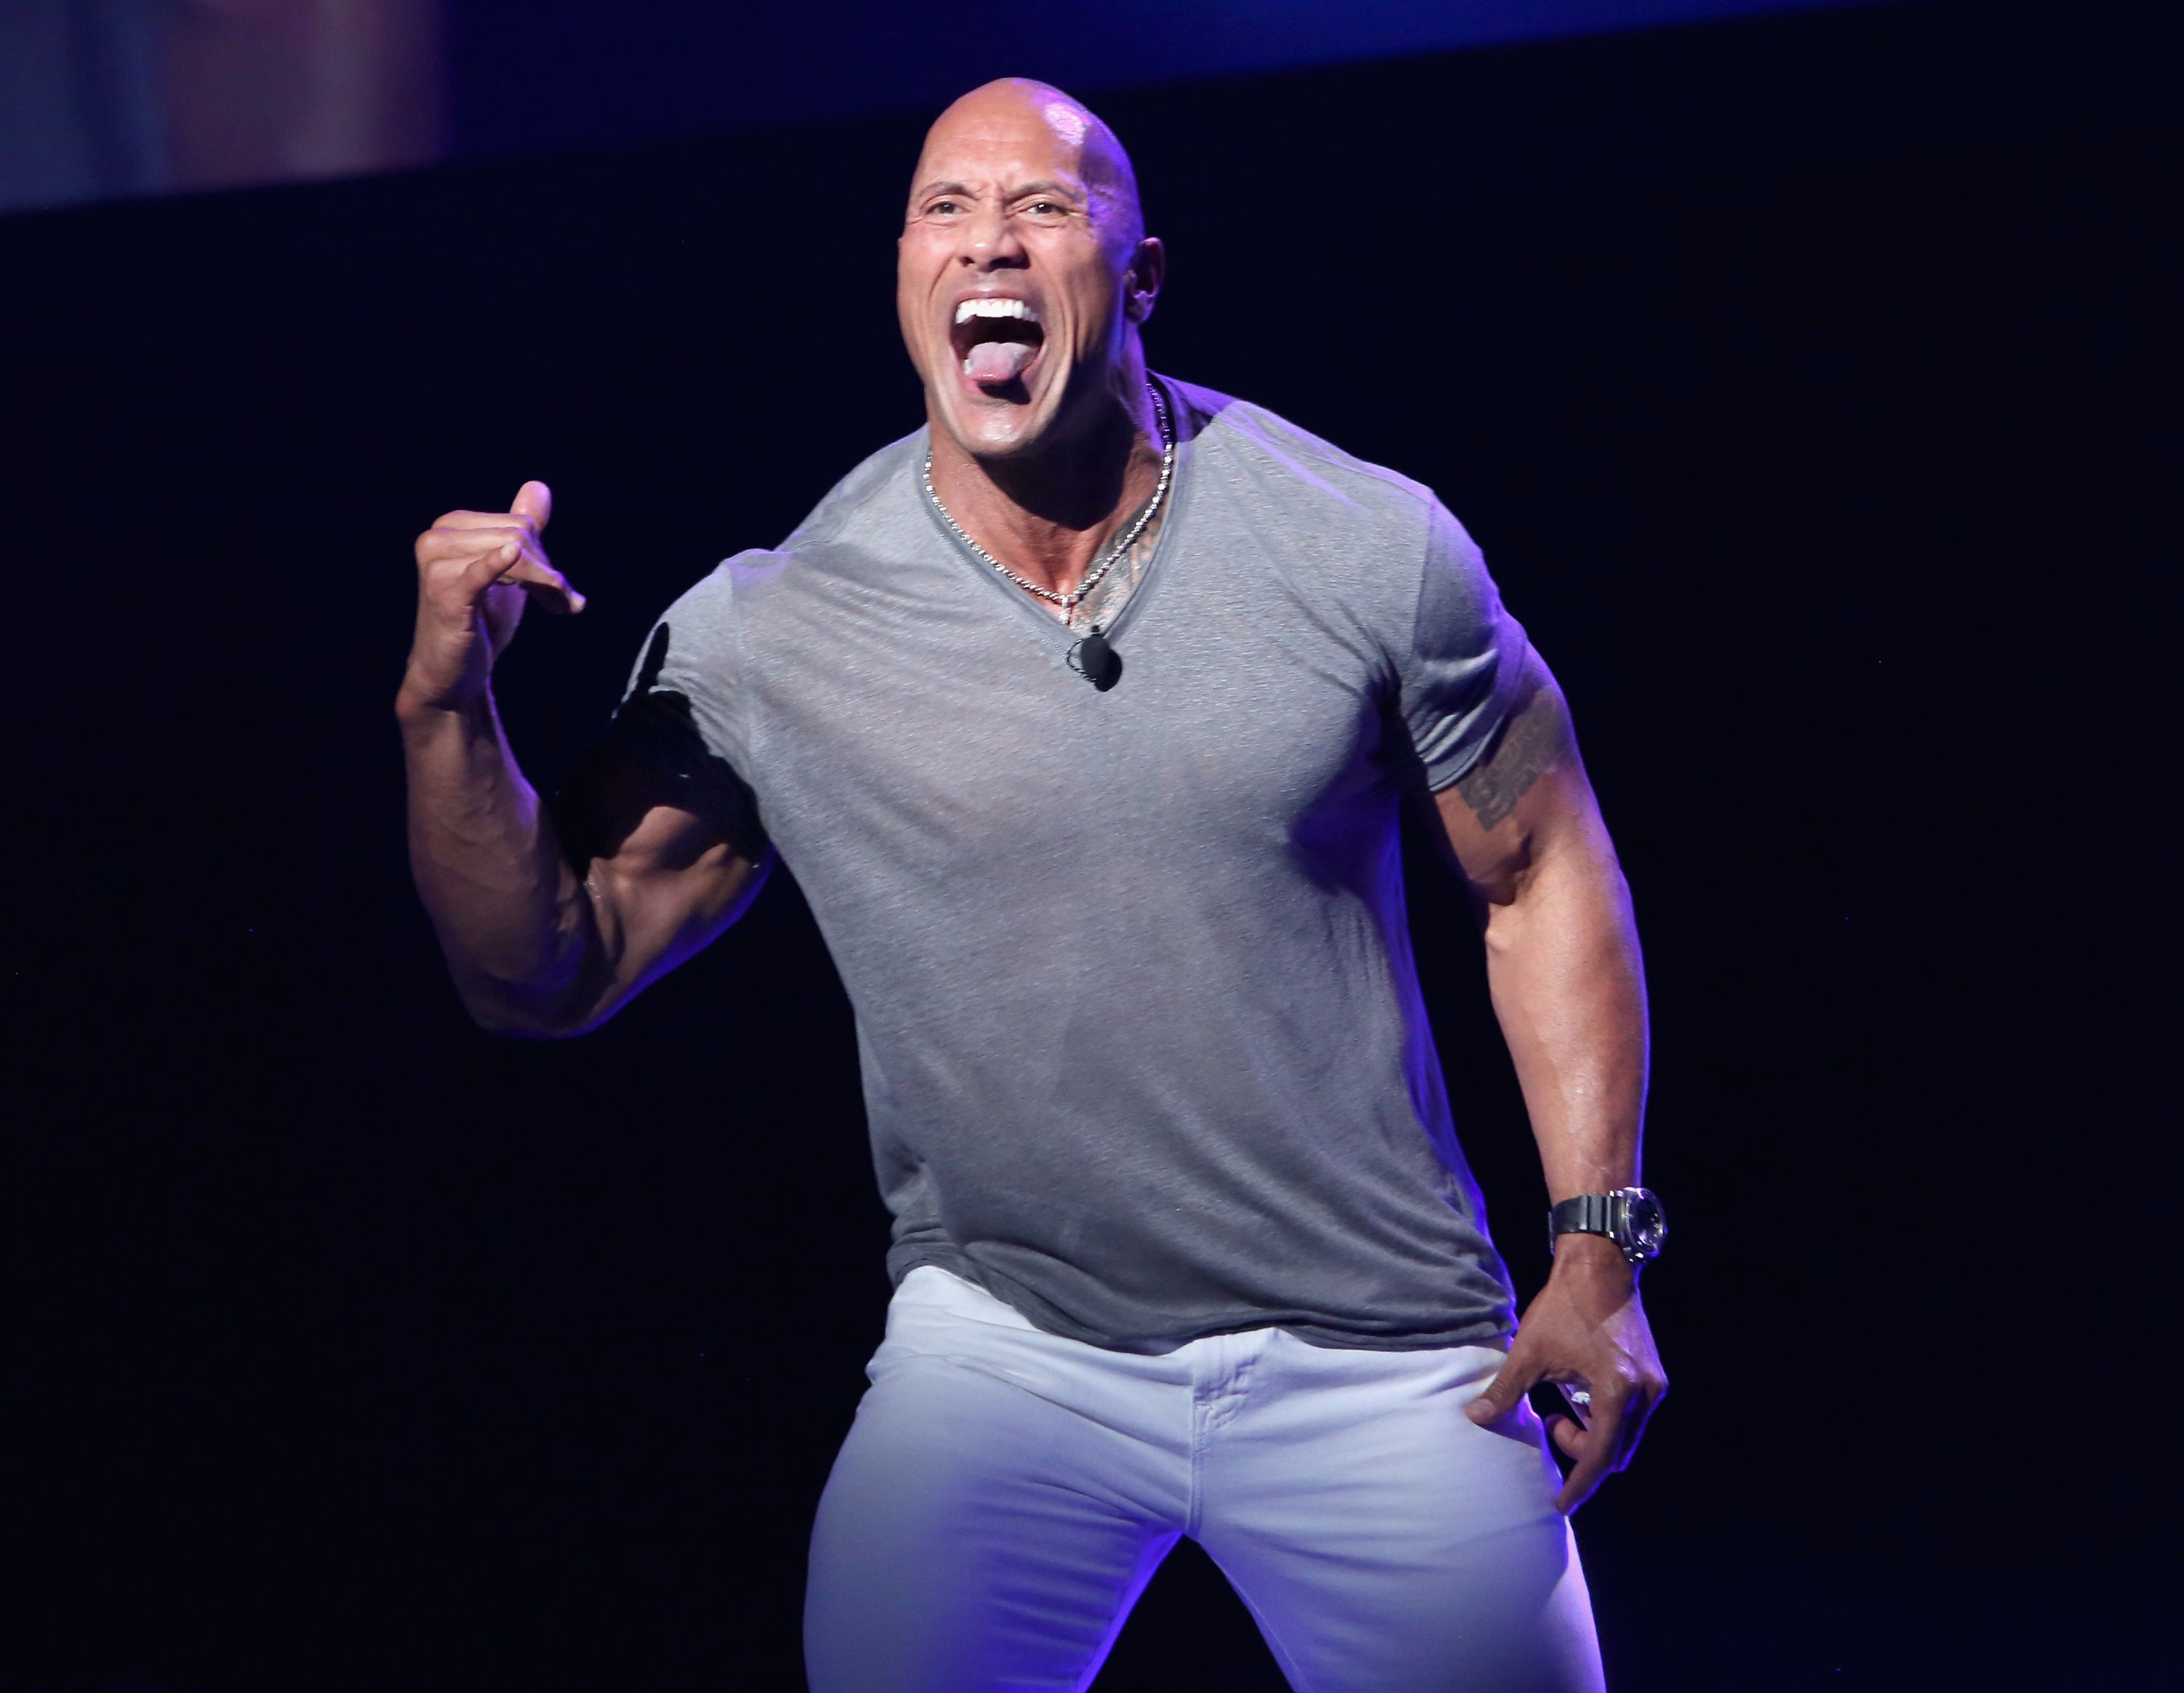 The Rock Finally Gets More Than Two 'Jeopardy' Answers Right... in a Category of Questions Based on His Own Career